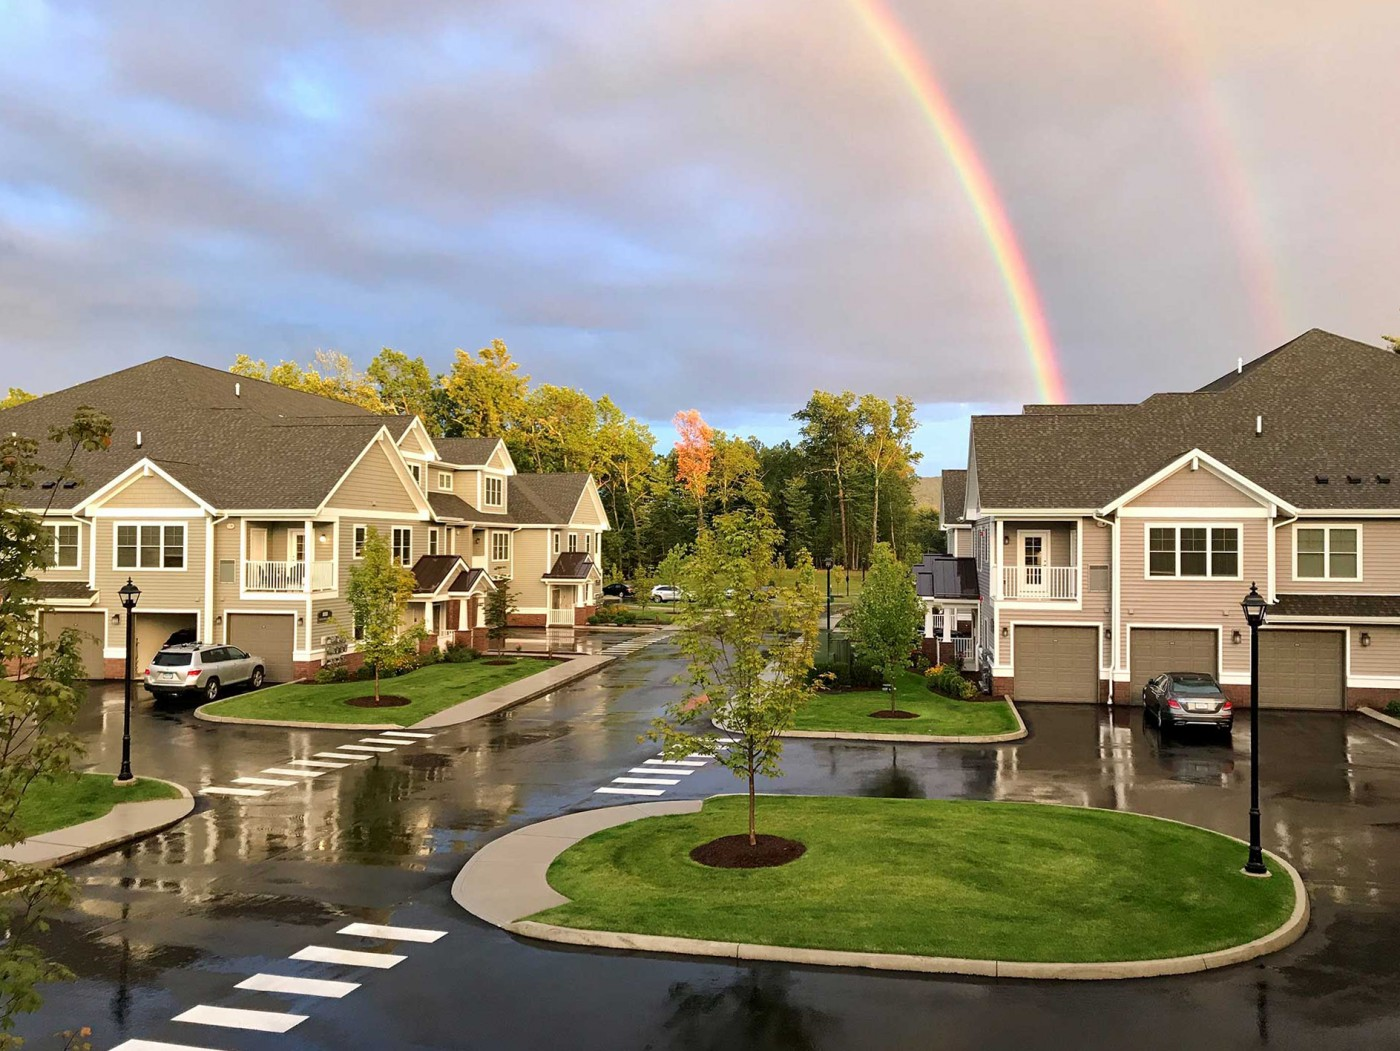 Highcroft-Simsbury-Double-Rainbow-opt-tilted